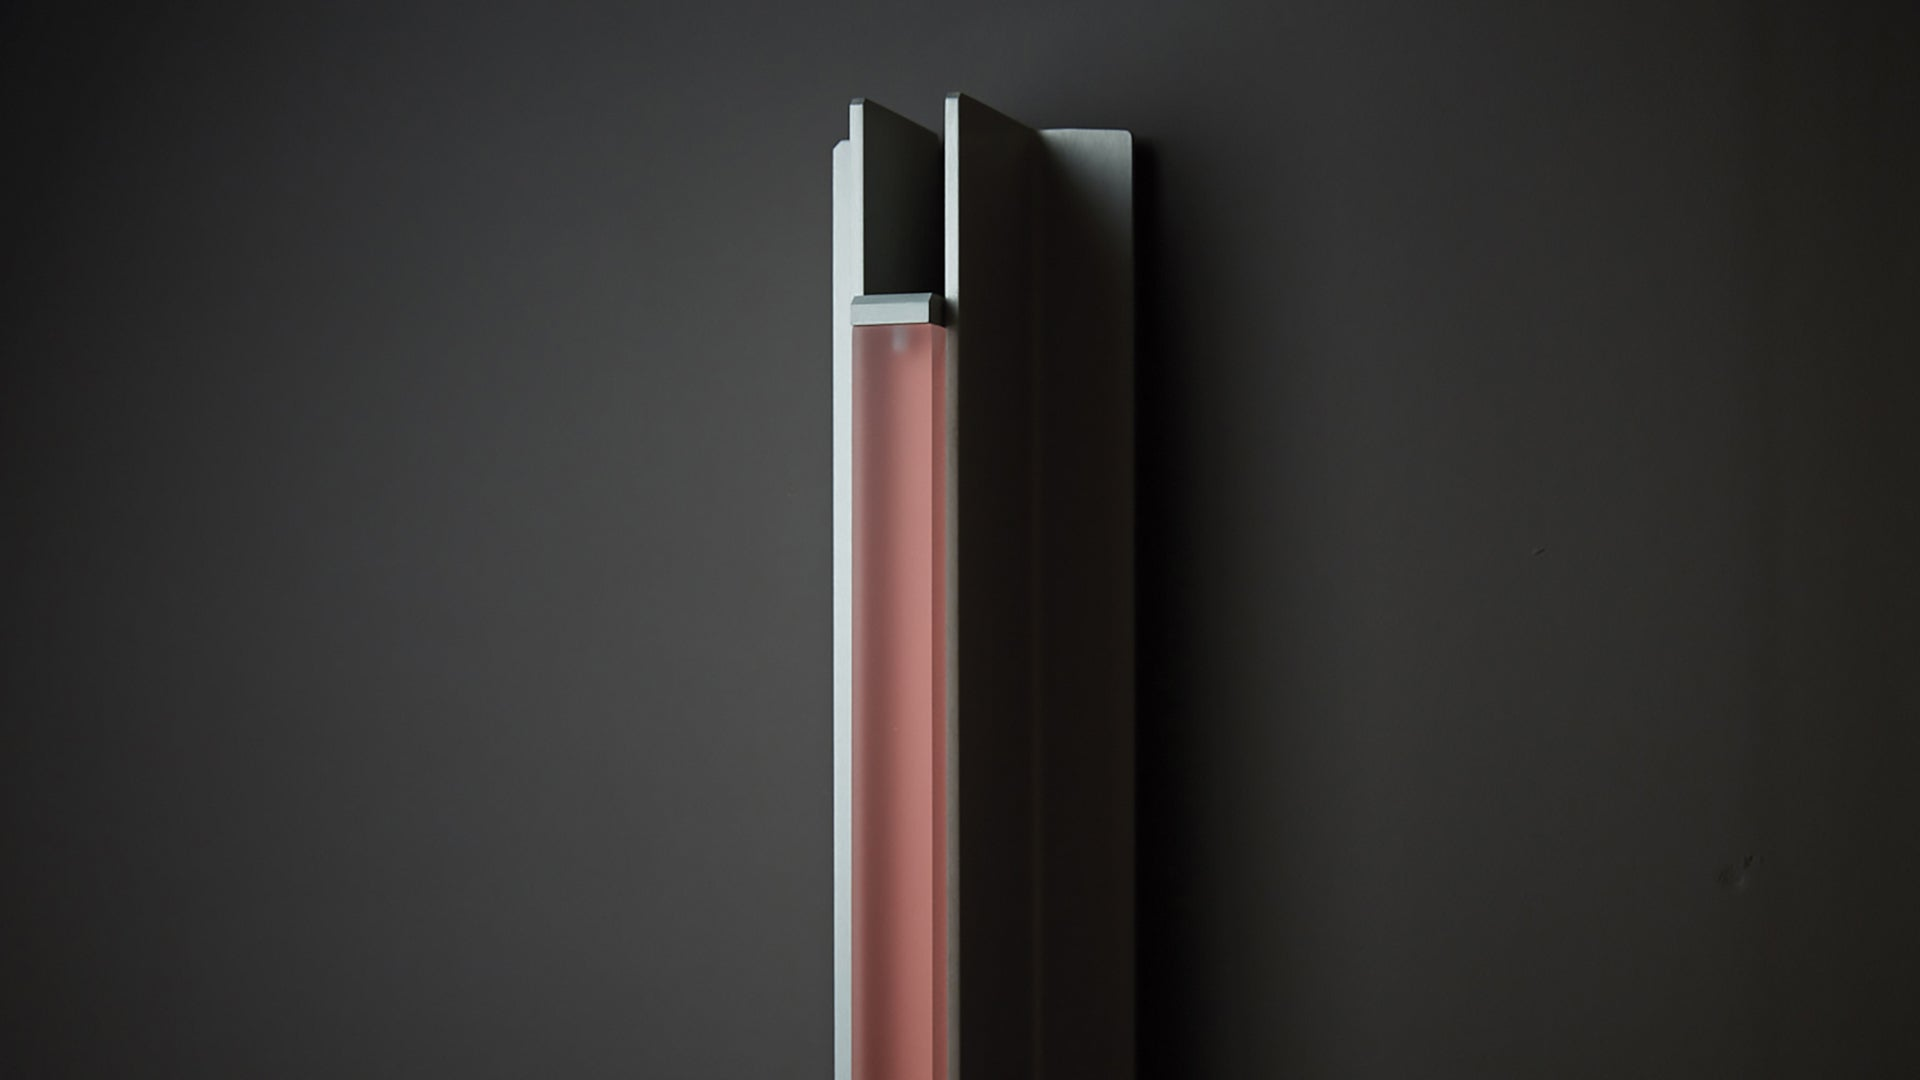 Beam Sconce Collection